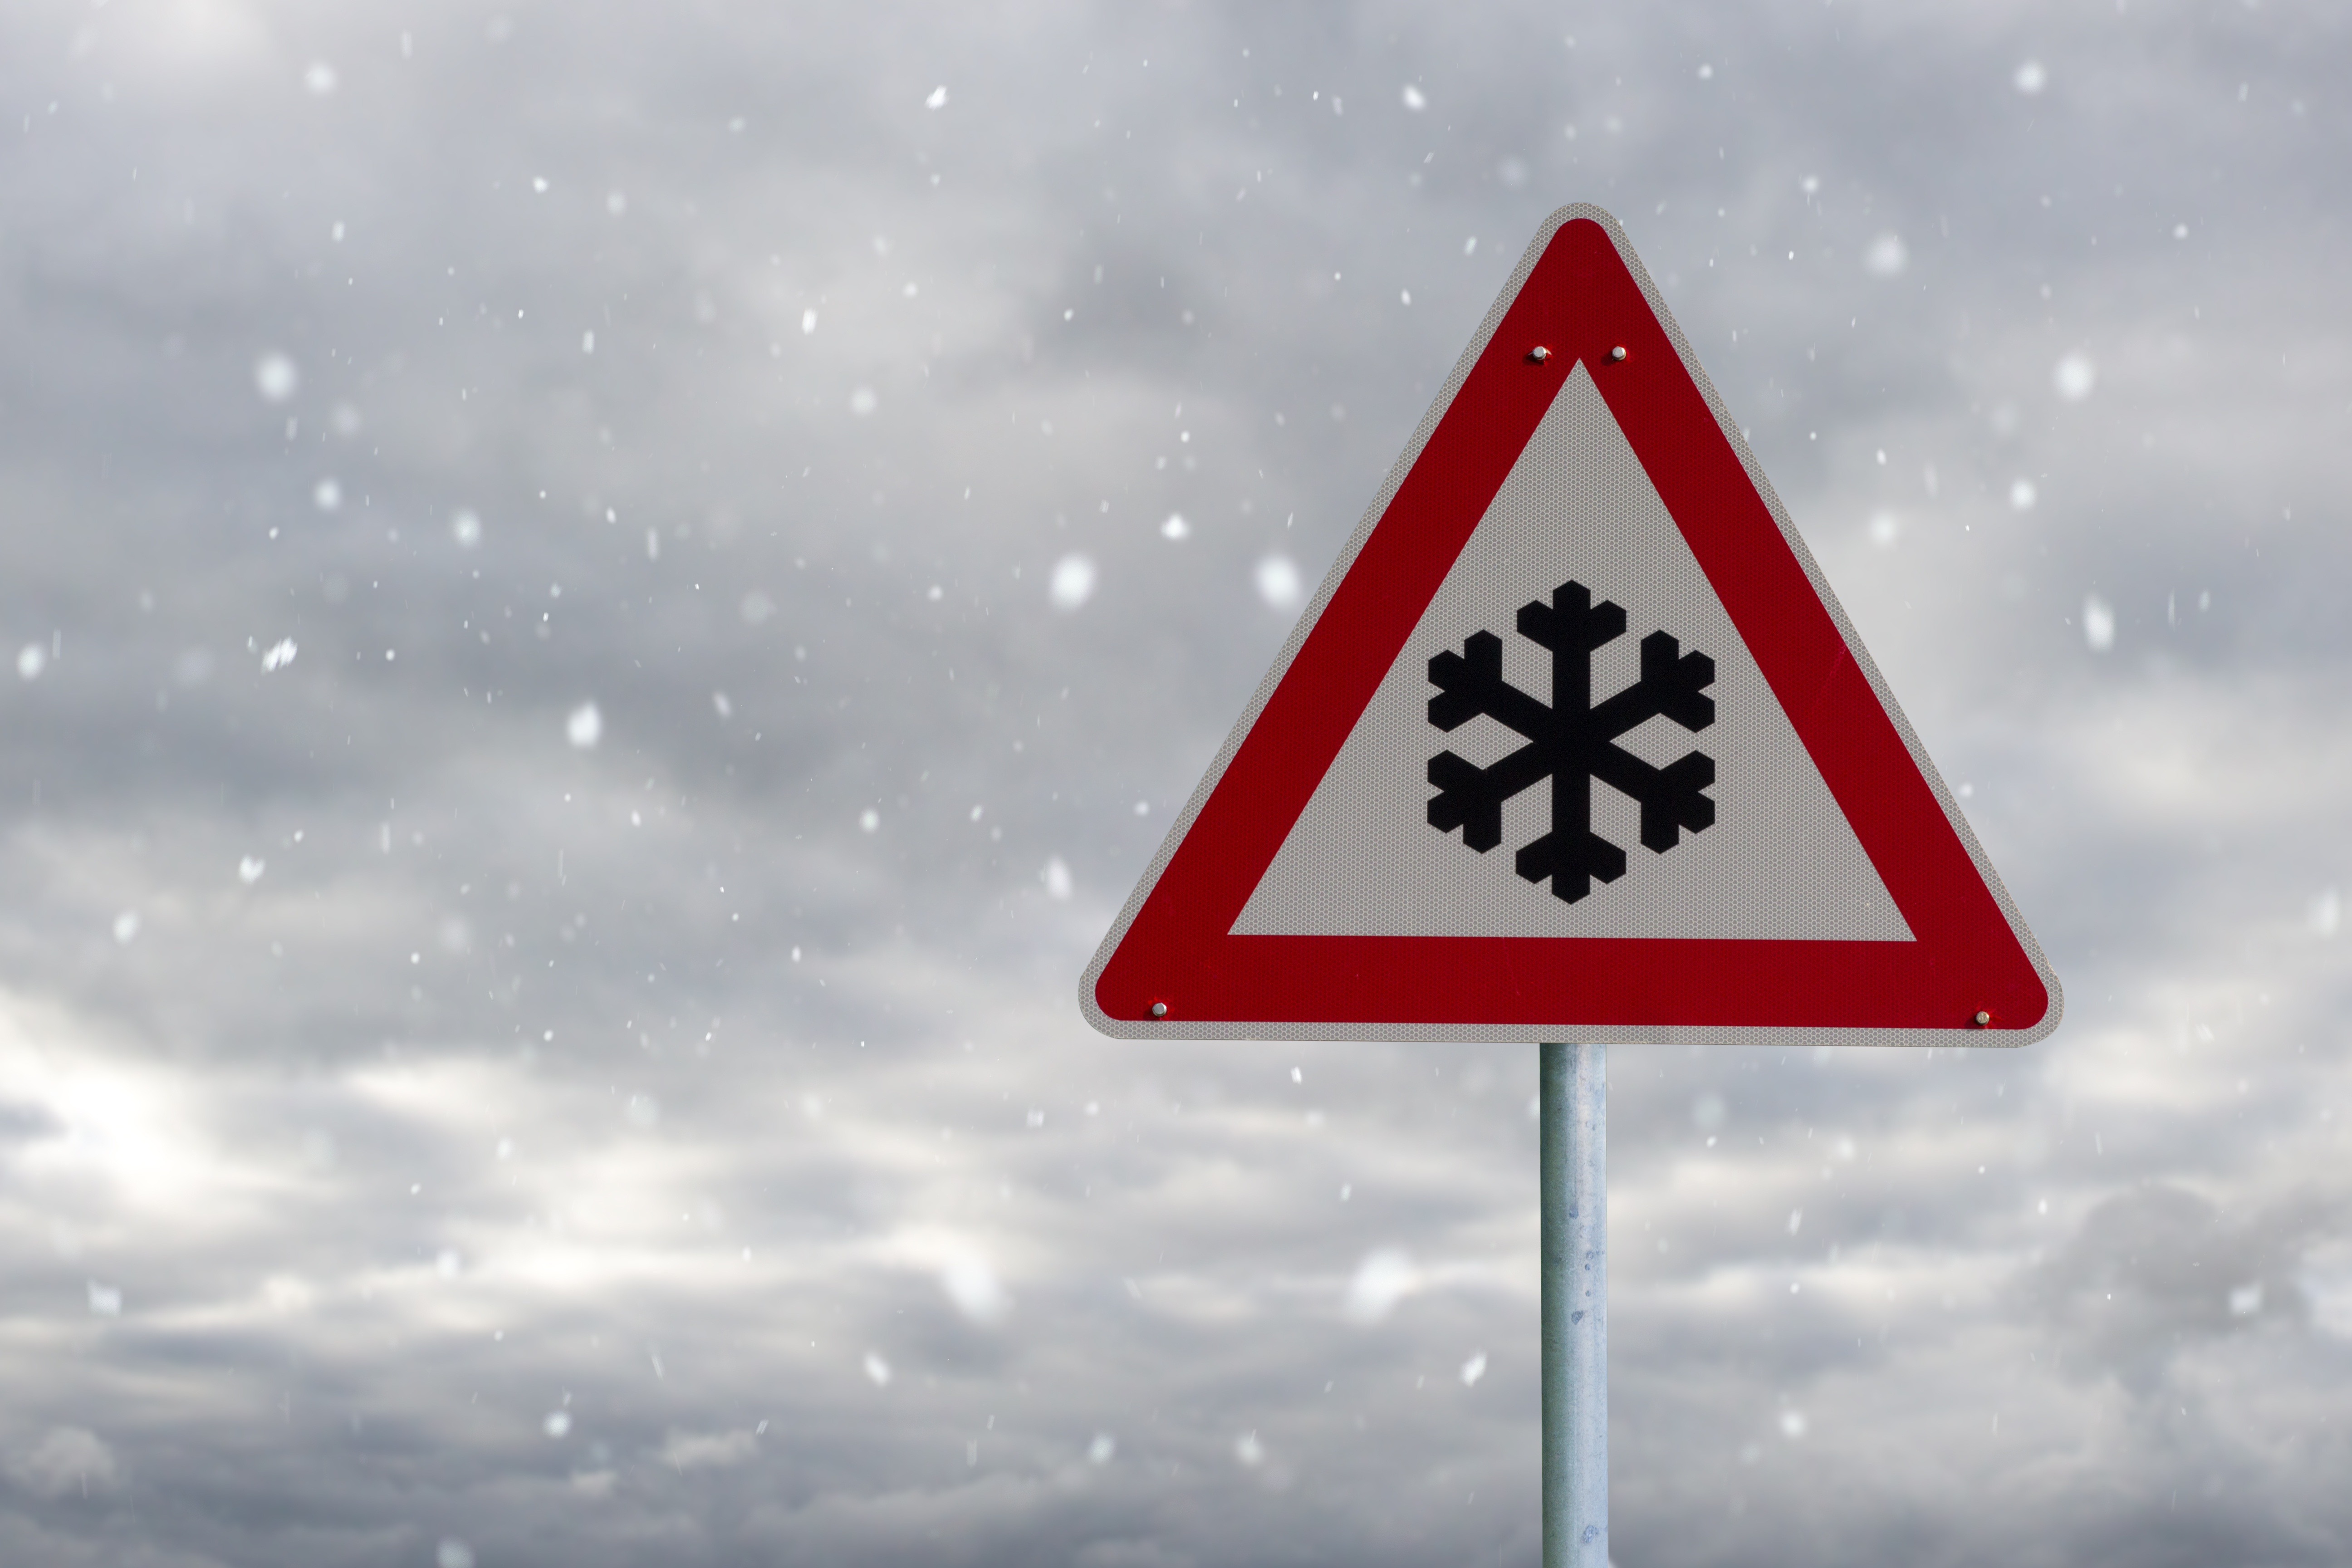 Snow Safety: Five Steps to be Prepared